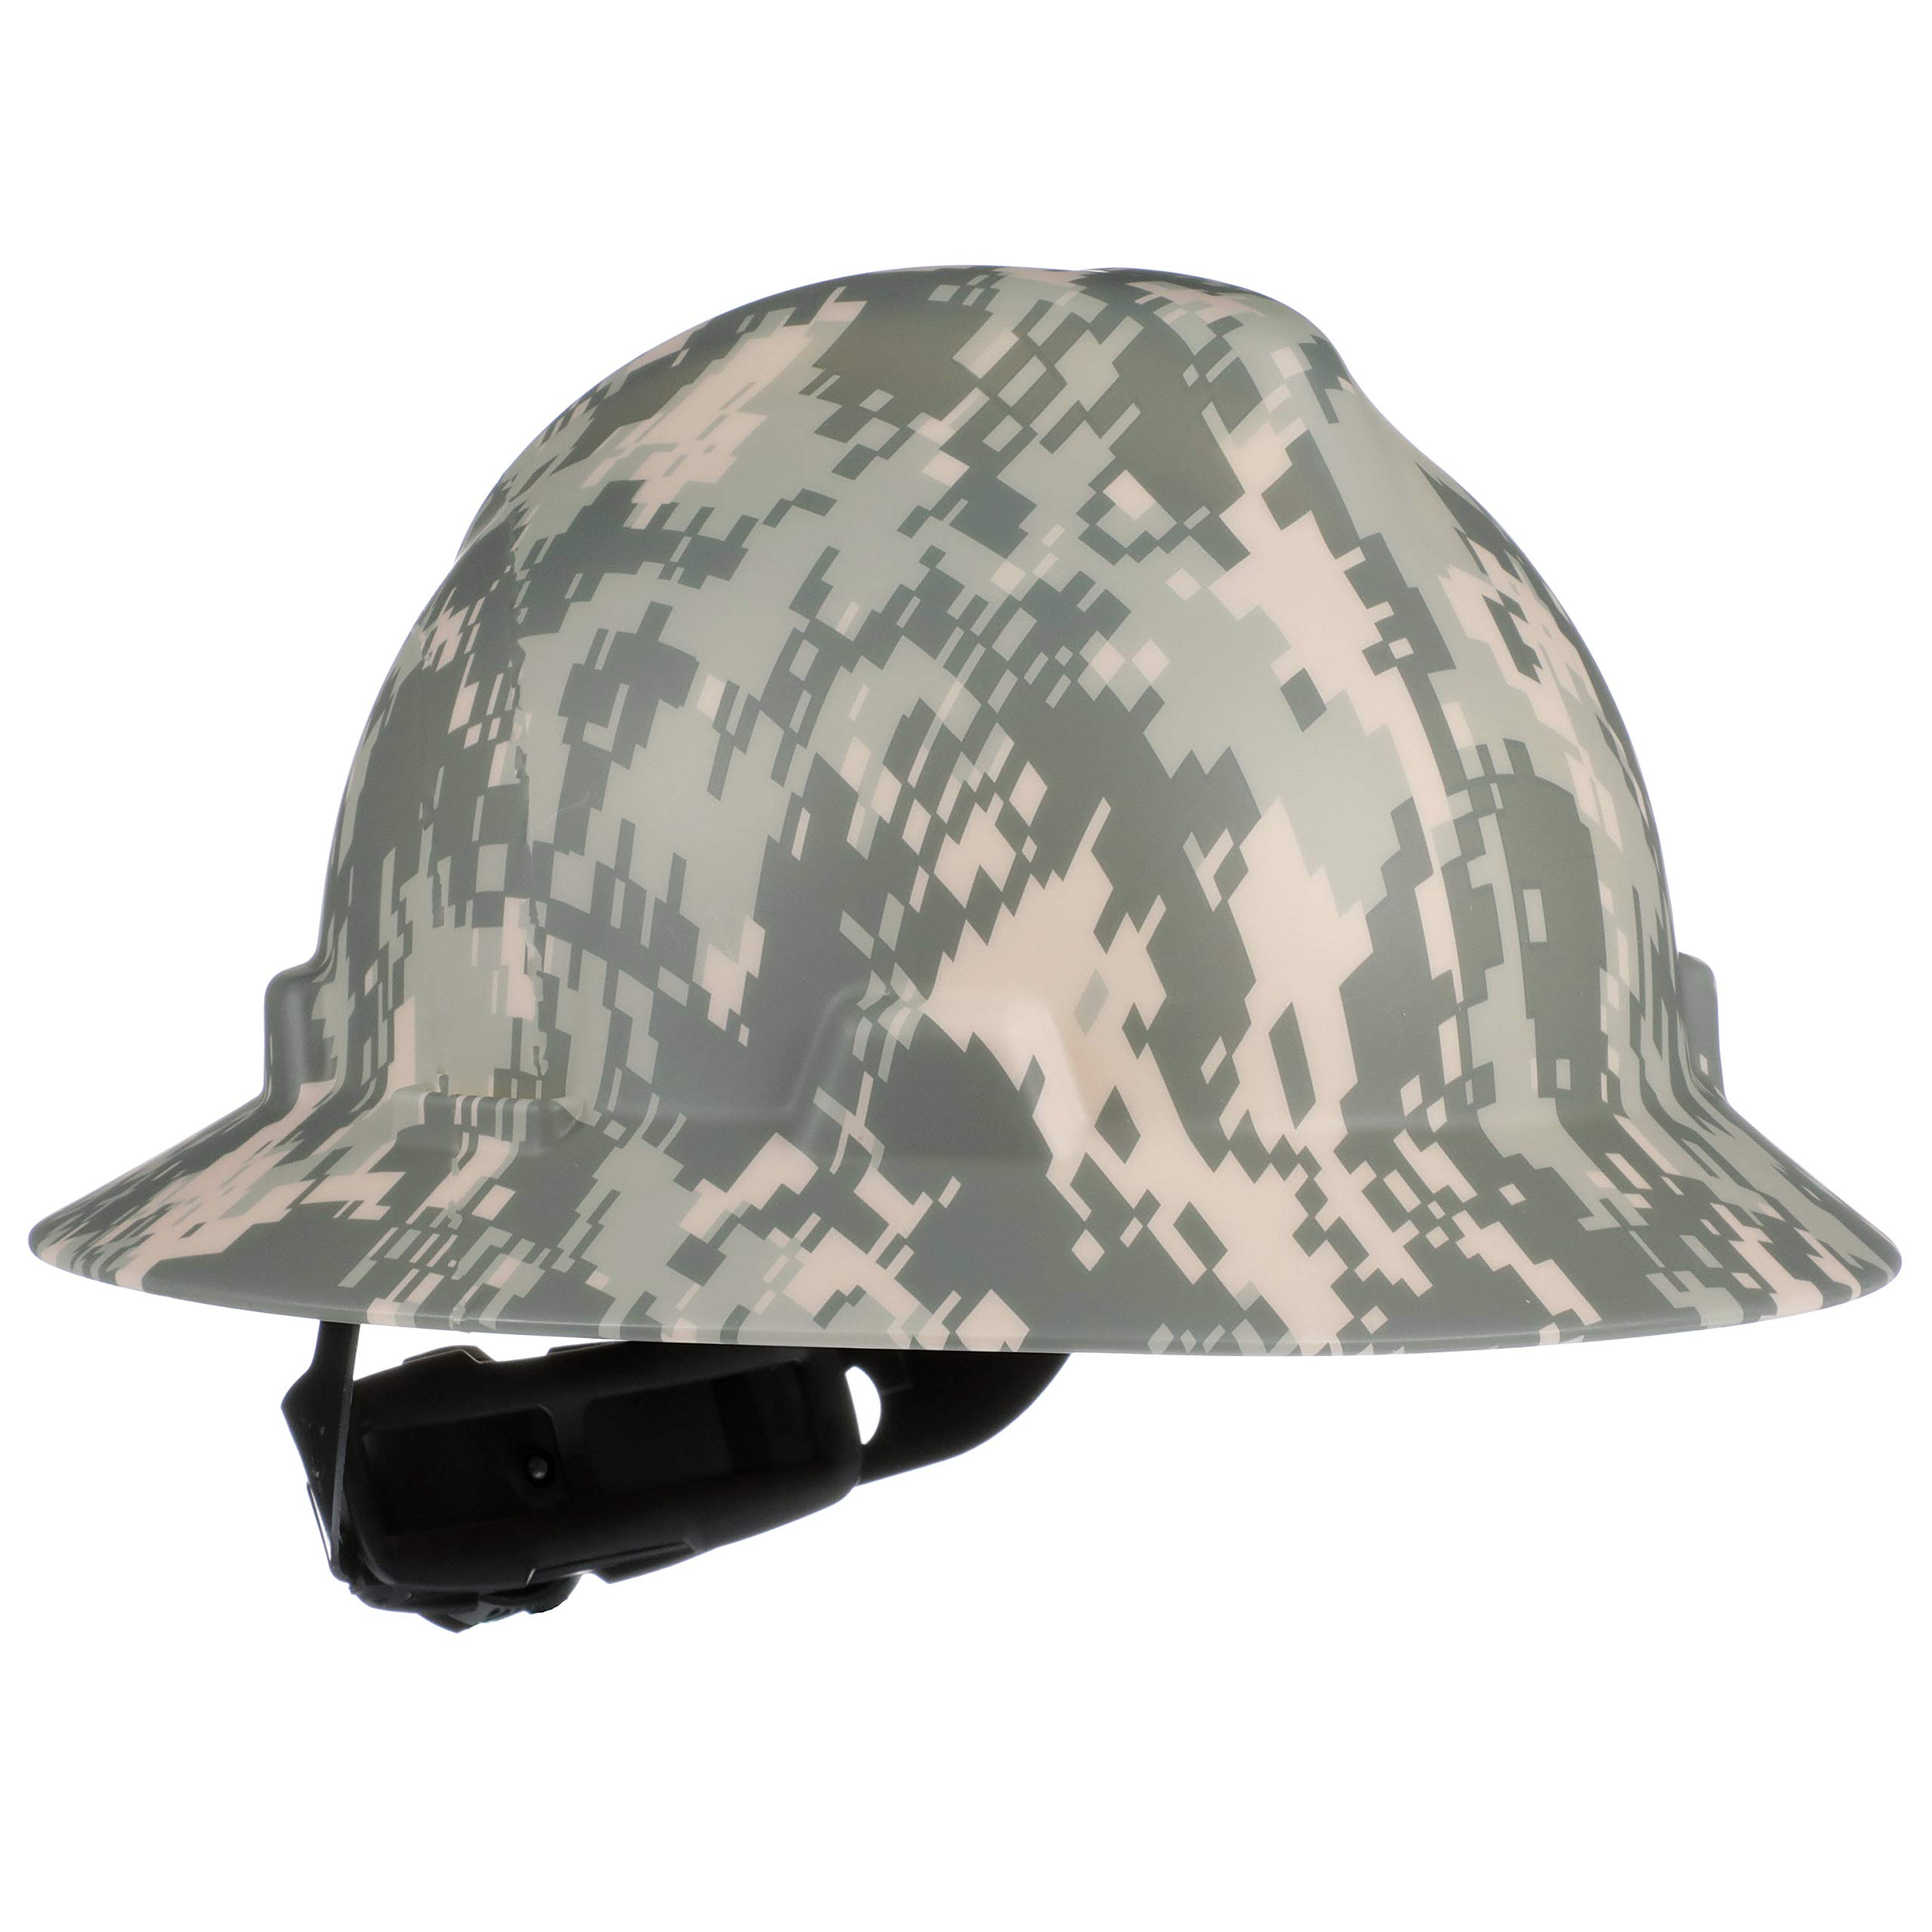 MSA 10104254 V-Gard Slotted Full Brim Hard Hat,  with 4-point Fas-Trac III Suspension, Standard, Camouflage by MSA